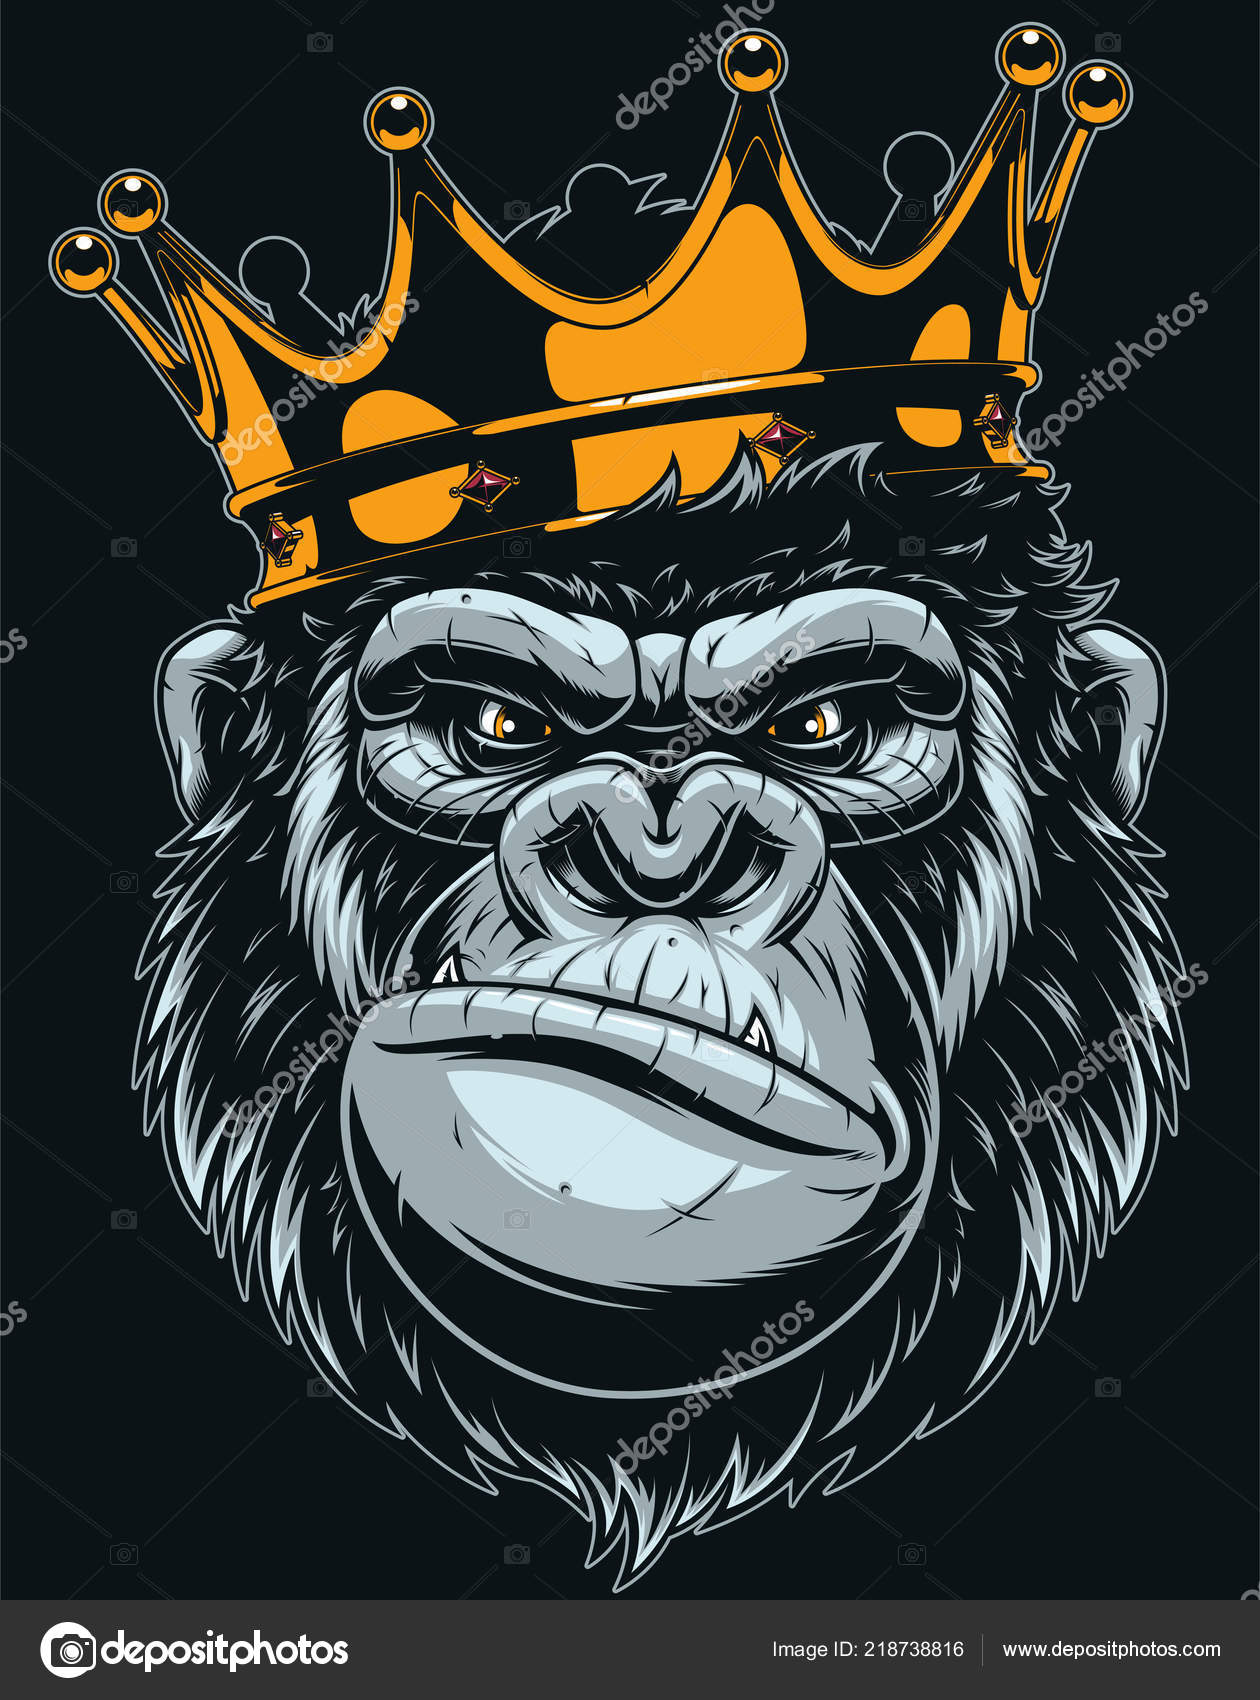 Áˆ Monkey With Crown Stock Animated Royalty Free Gorilla Crown Vectors Download On Depositphotos A cartoon of a monkey with a wrench. https depositphotos com 218738816 stock illustration vector illustration ferocious gorilla head html